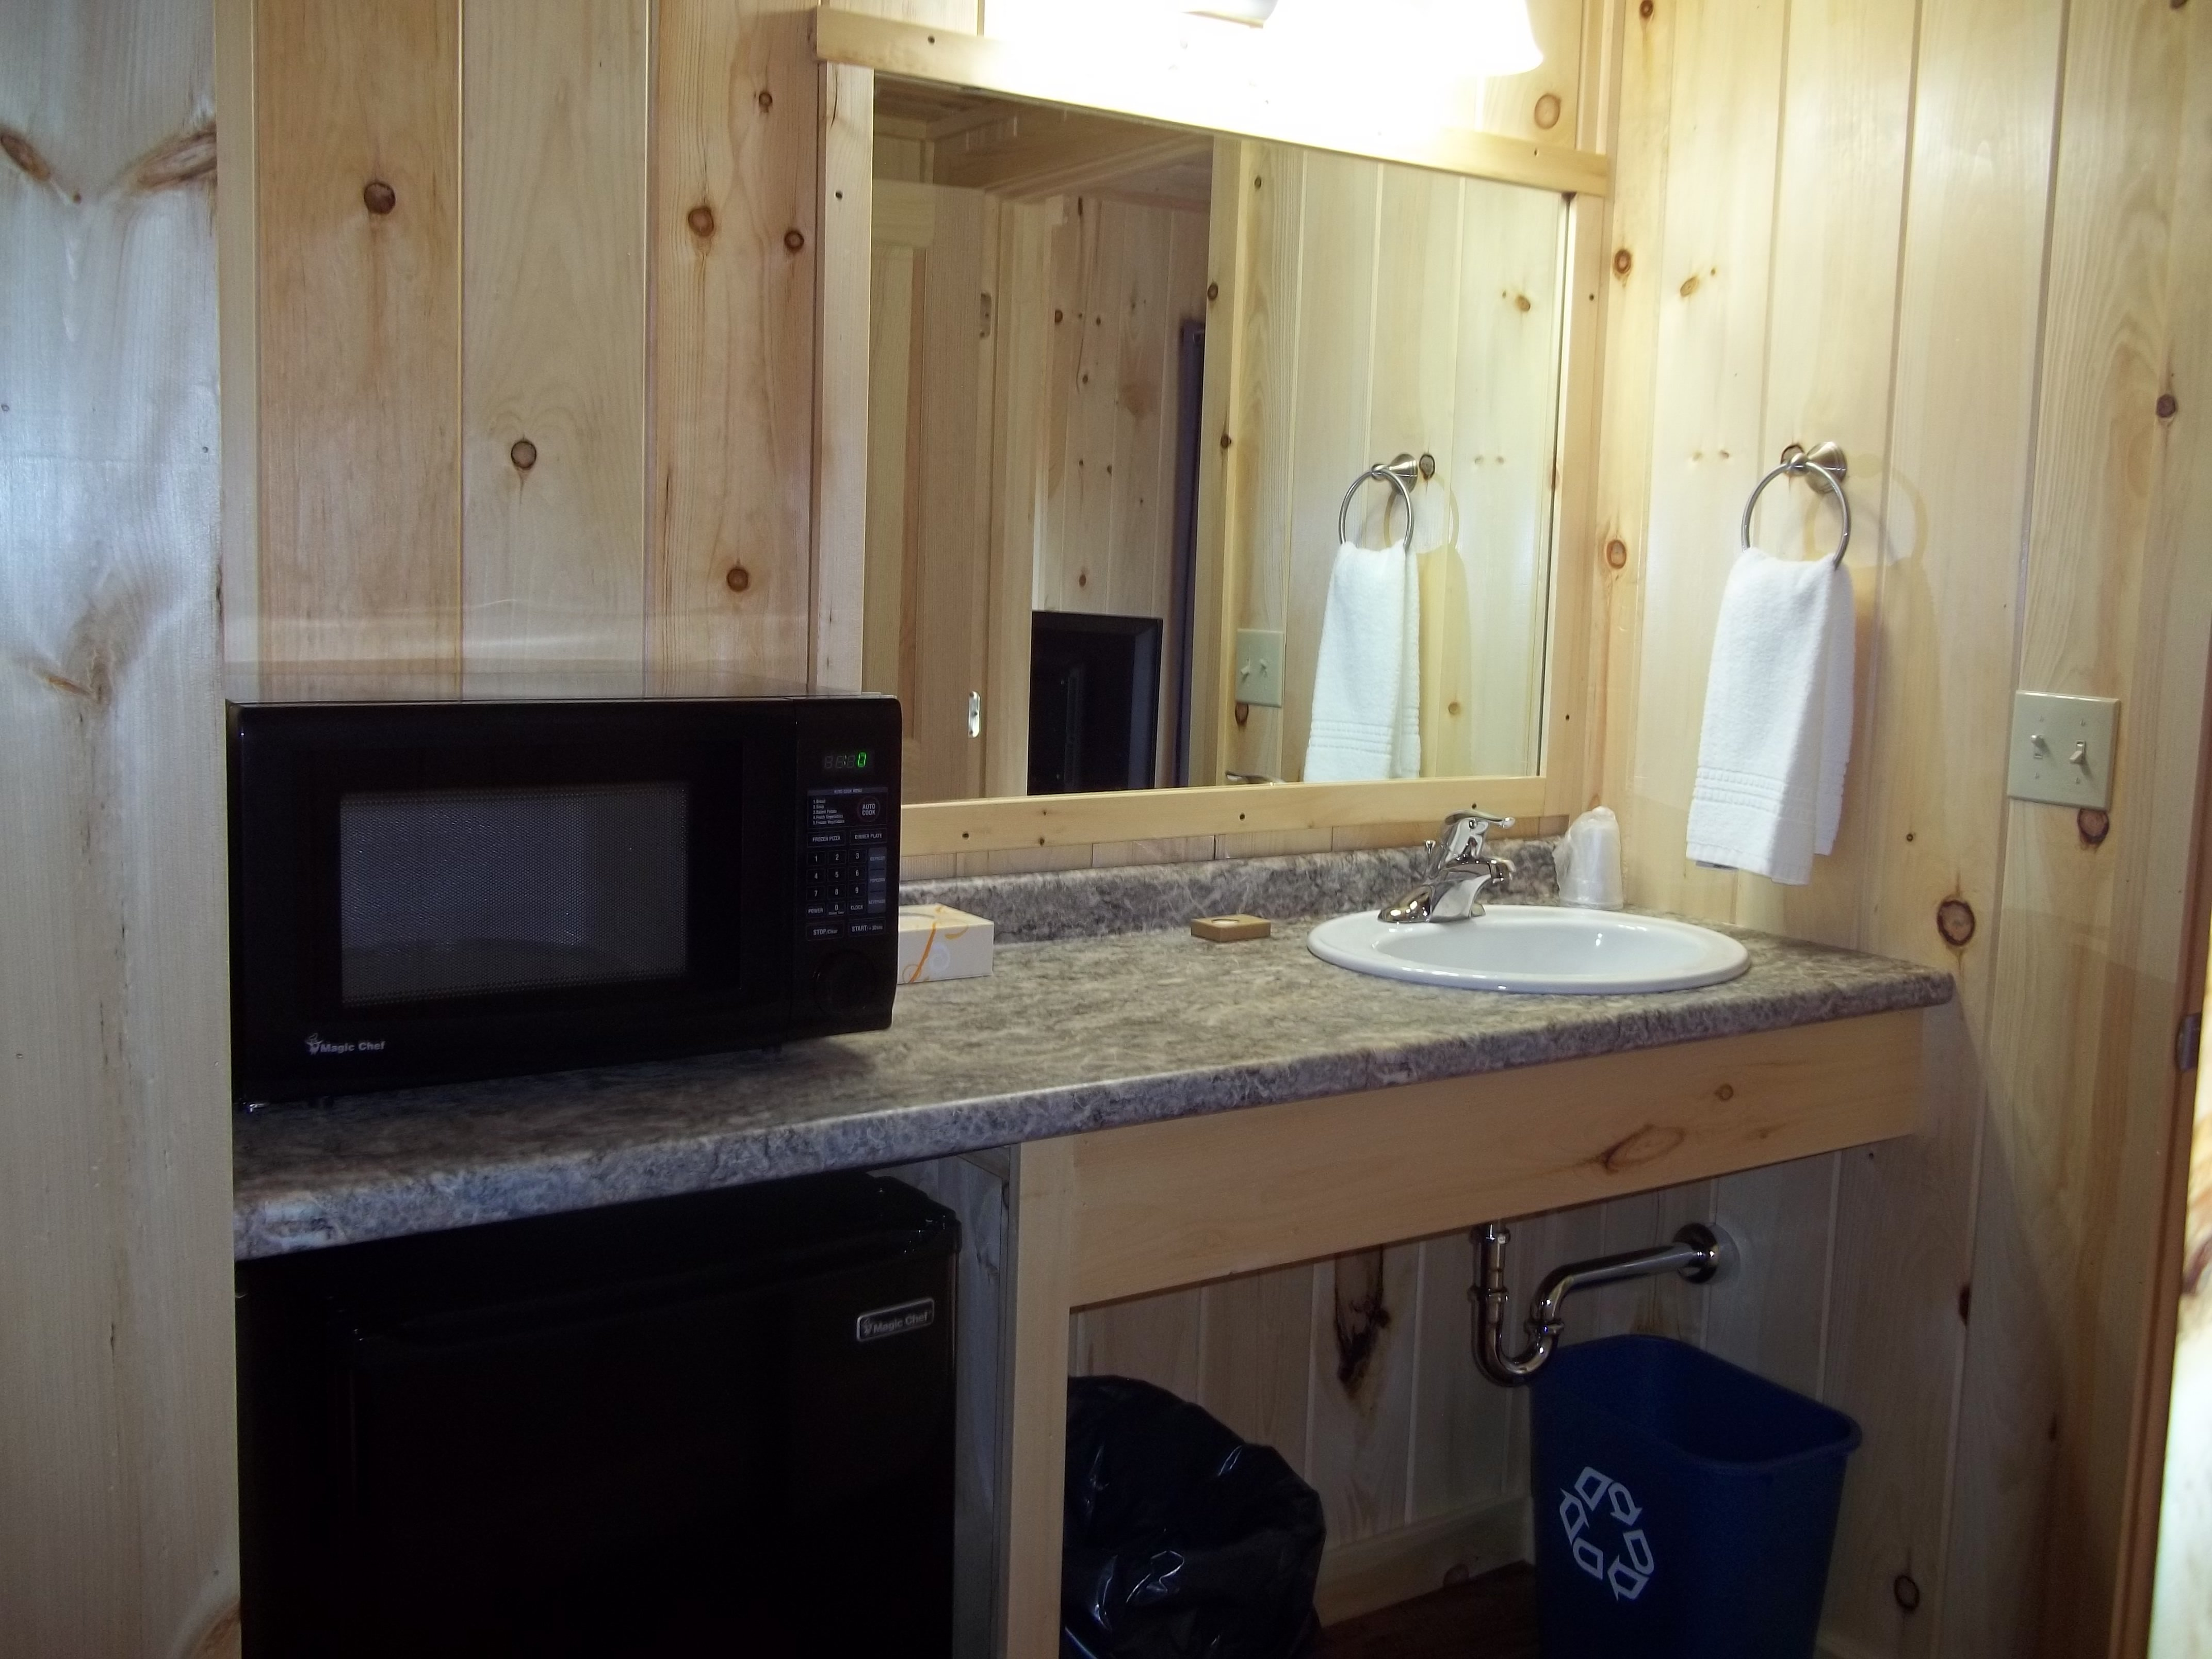 Extra sink, fridge, microwave in cottage suite